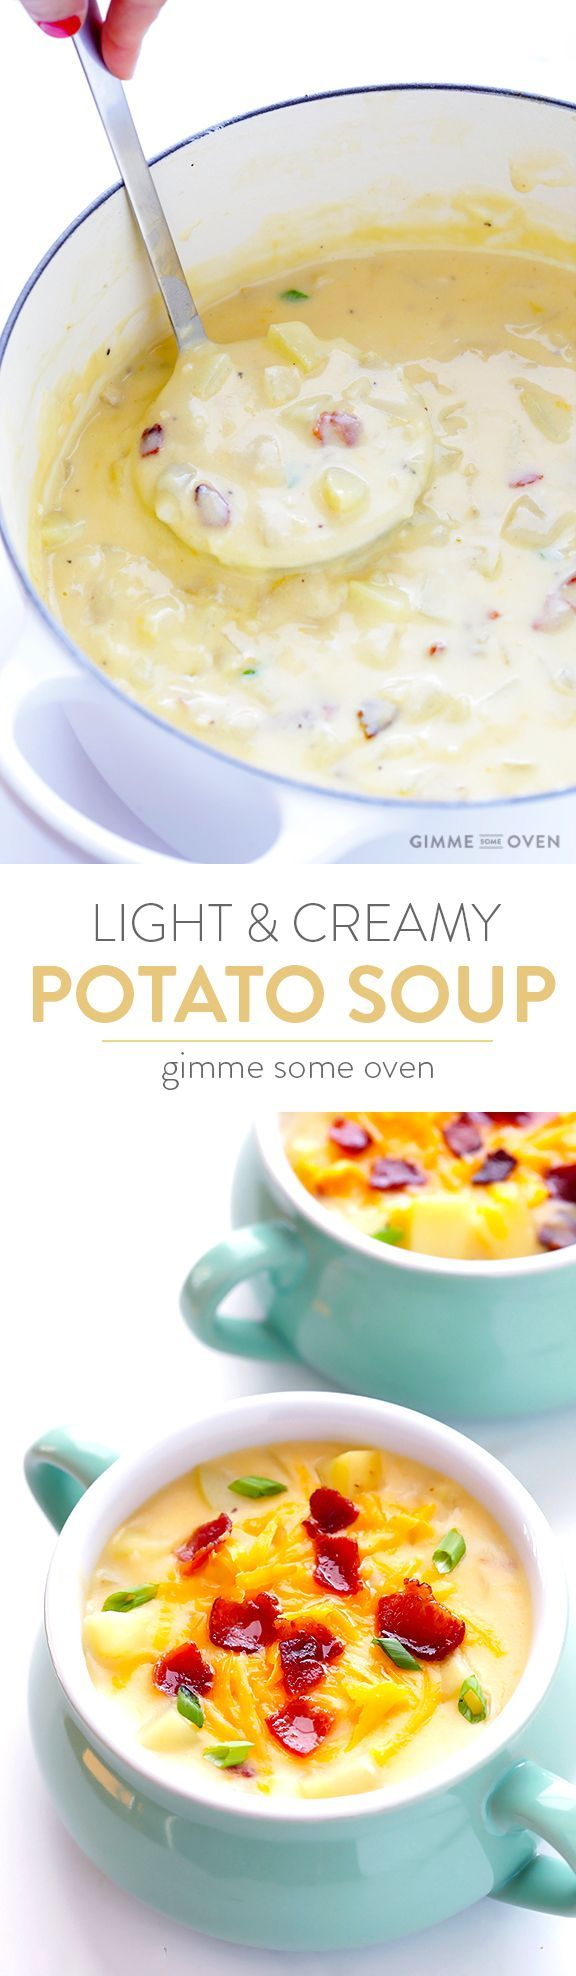 My all-time favorite recipe for classic potato soup!  It's simple to make, lightened up with milk instead of cream, and perfectly creamy and delicious. | gimmesomeoven.com